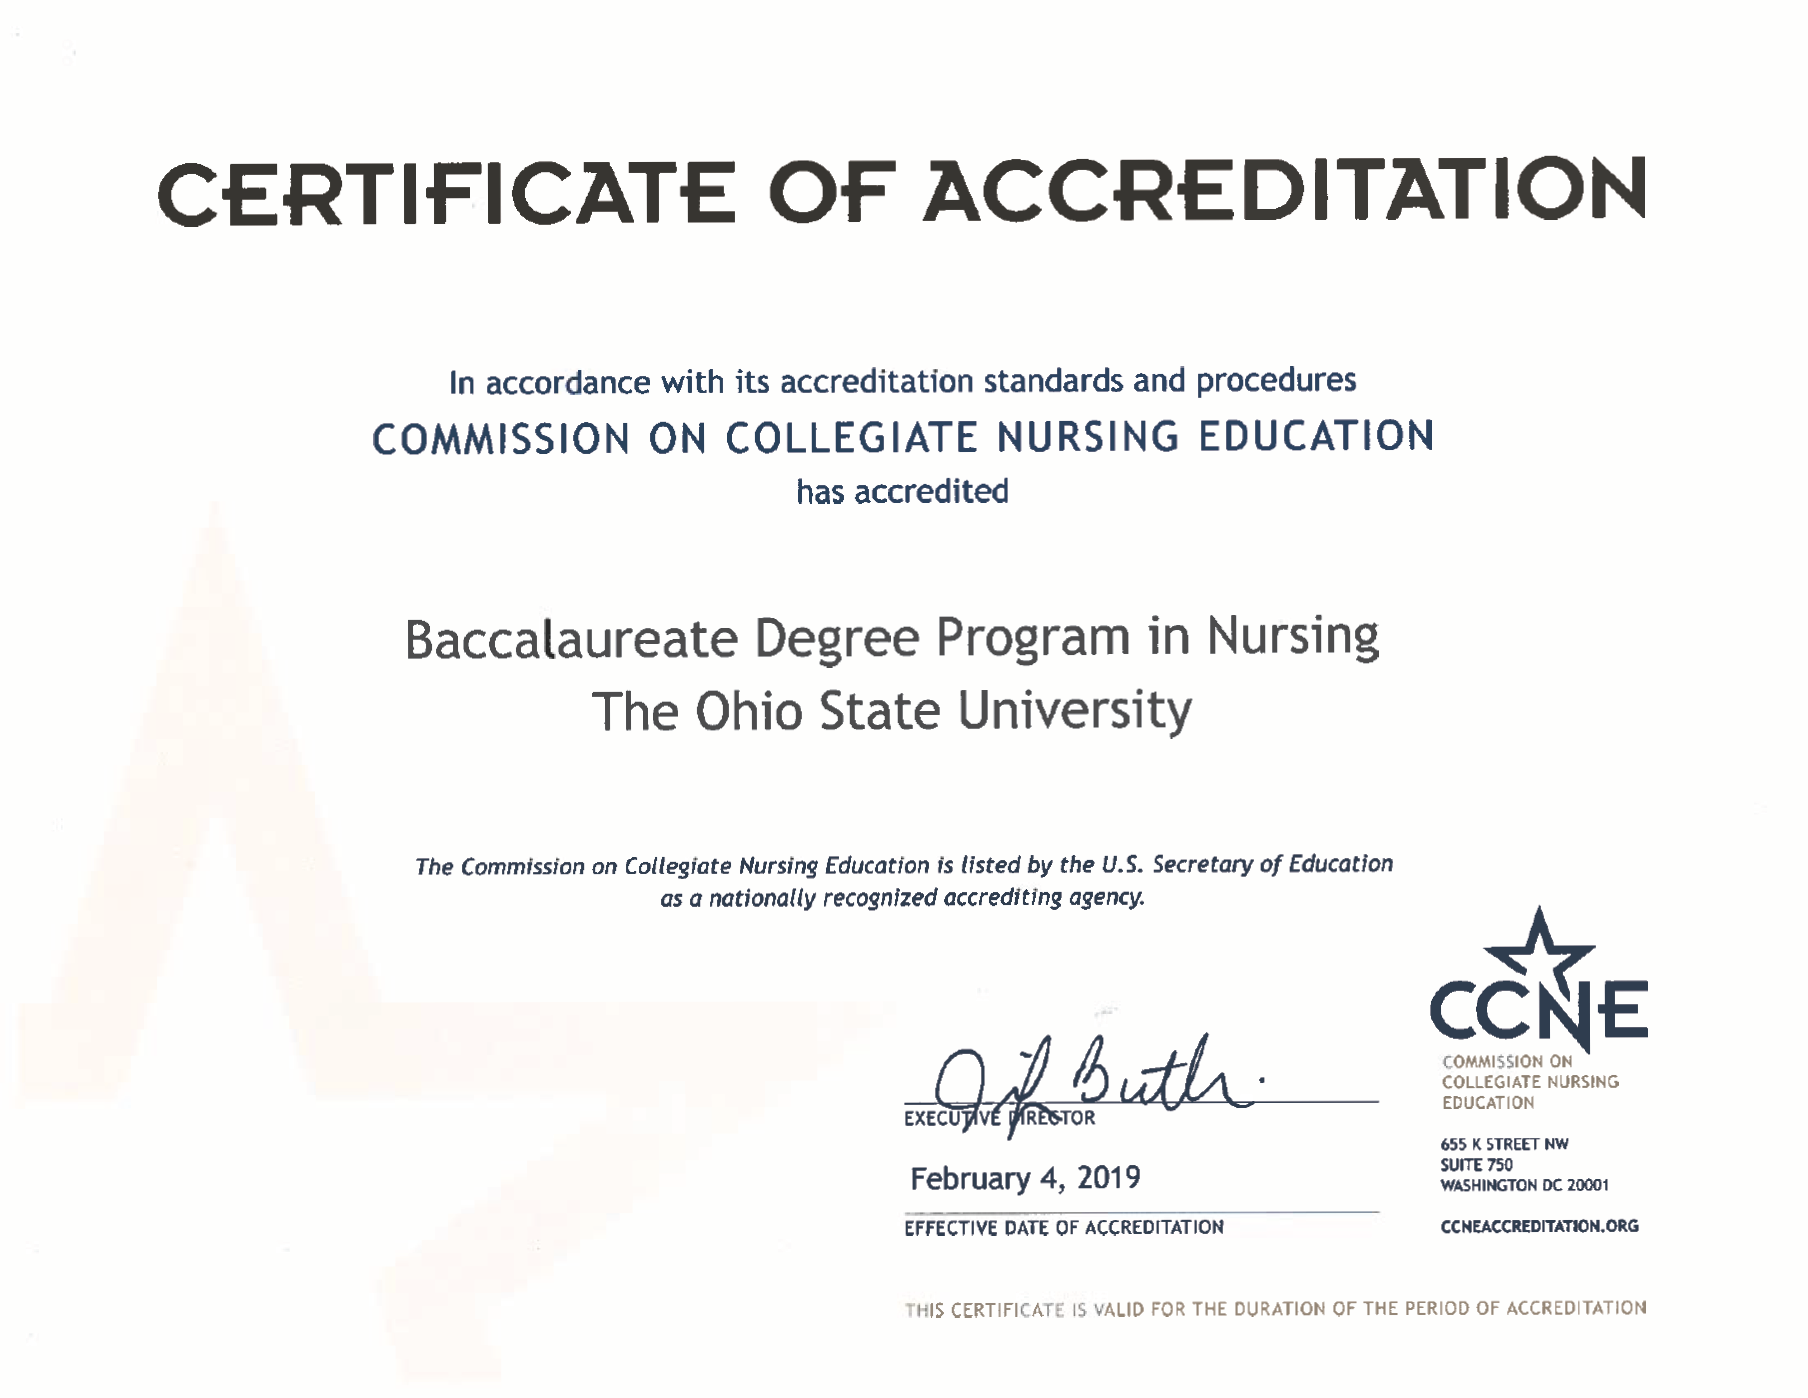 Baccalaureate Accreditation Certificate